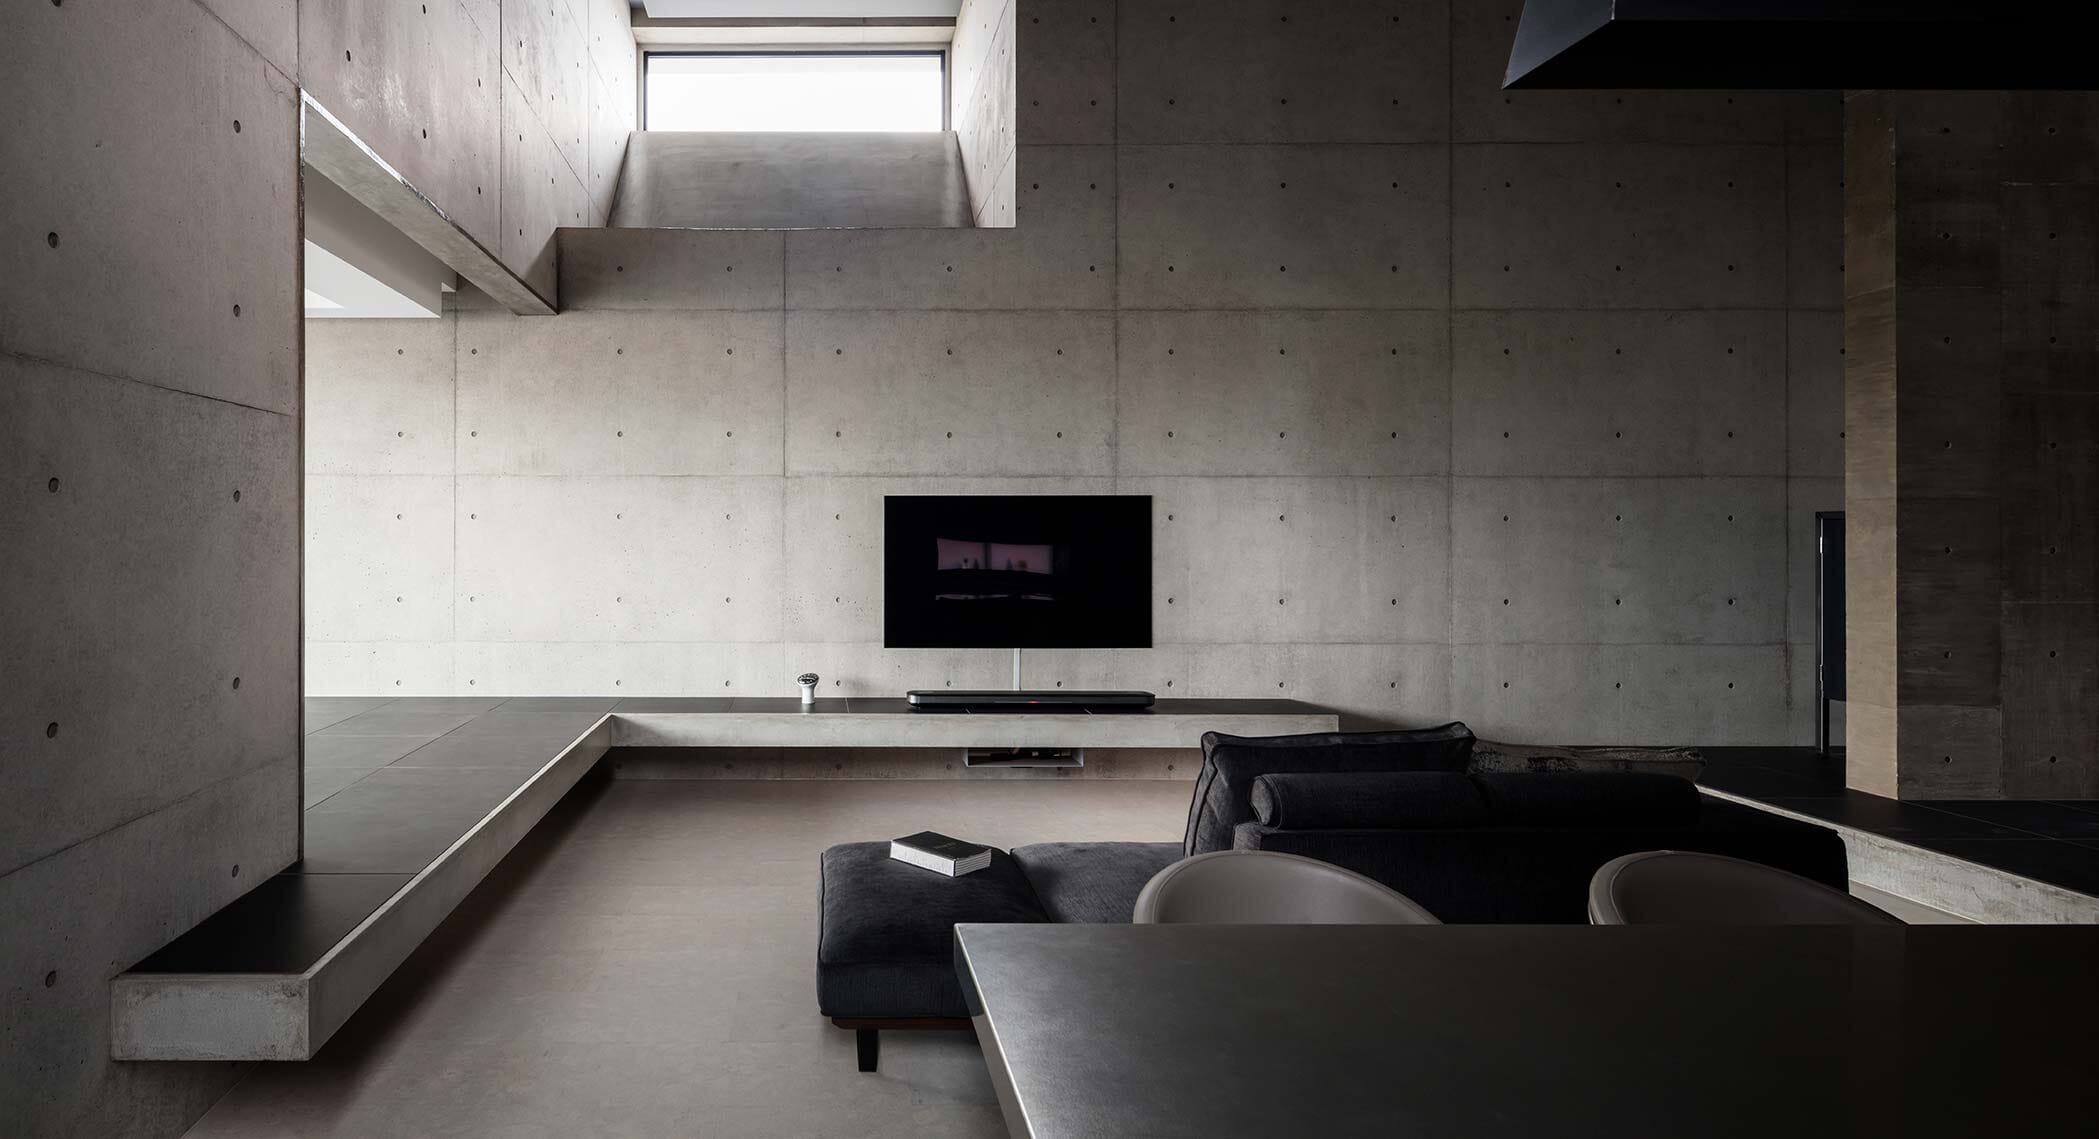 FORM & Kouichi Kimura's Tranquil House Makes Concrete Float